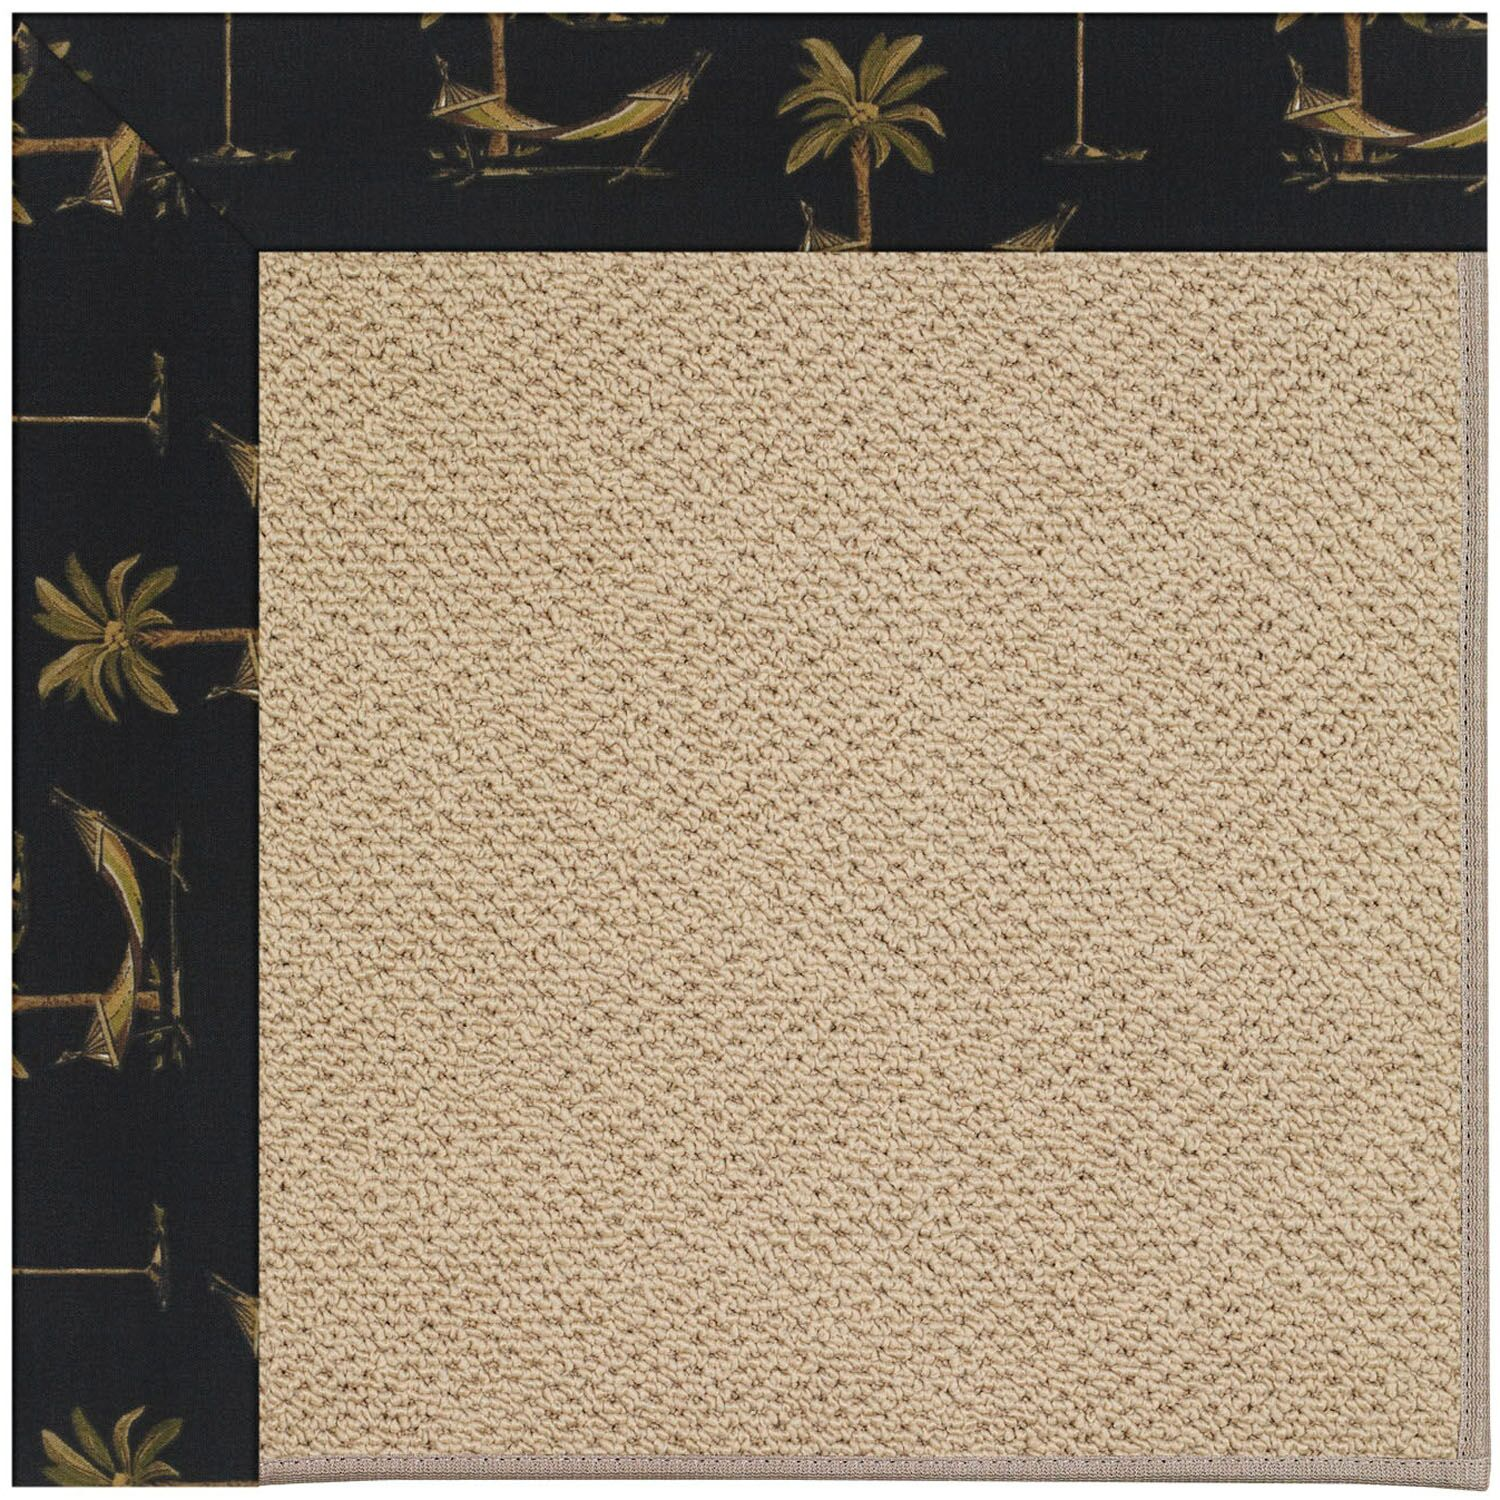 Lisle Machine Tufted Jet Black/Beige Indoor/Outdoor Area Rug Rug Size: Square 4'